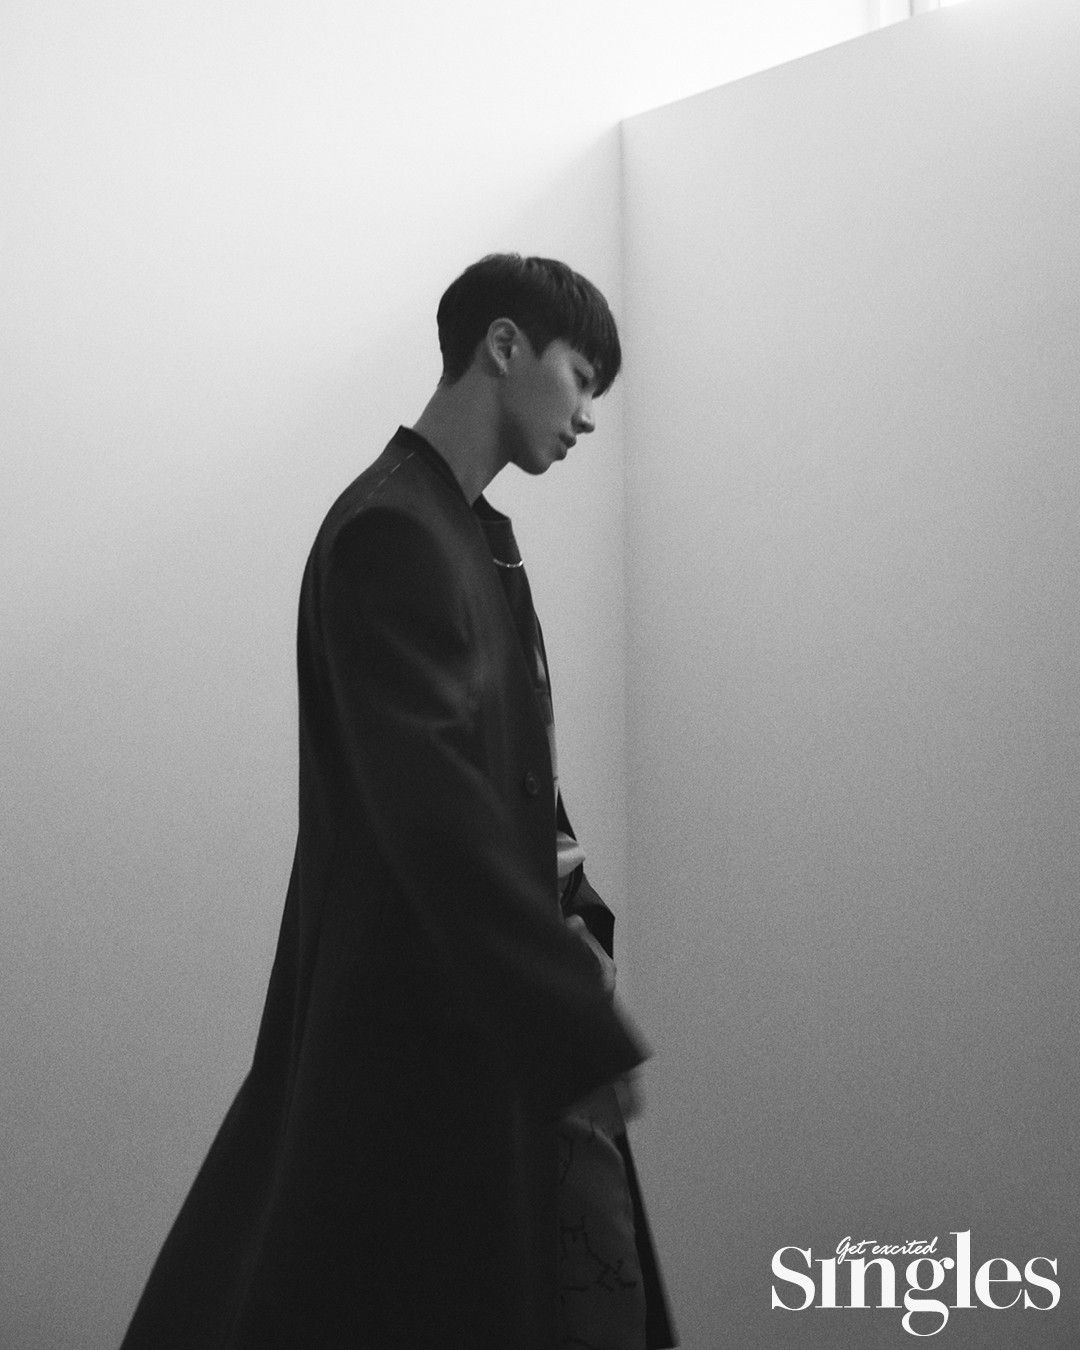 Lee Gikwang from Highlight on the changes brought by the military